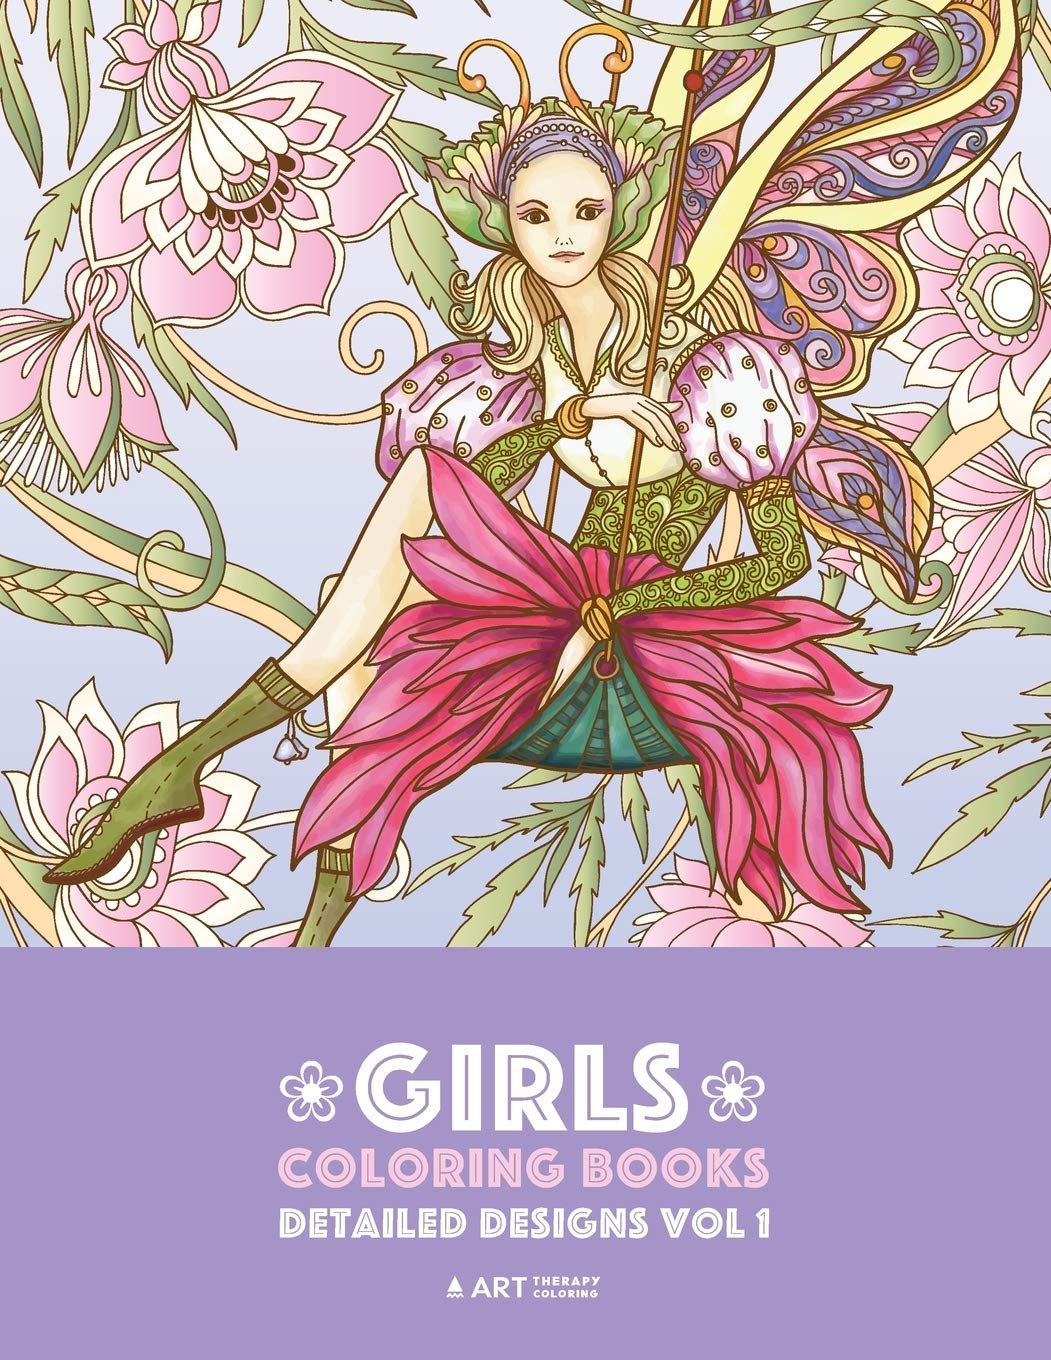 Girls Coloring Books Detailed Designs Vol 1 Complex Coloring